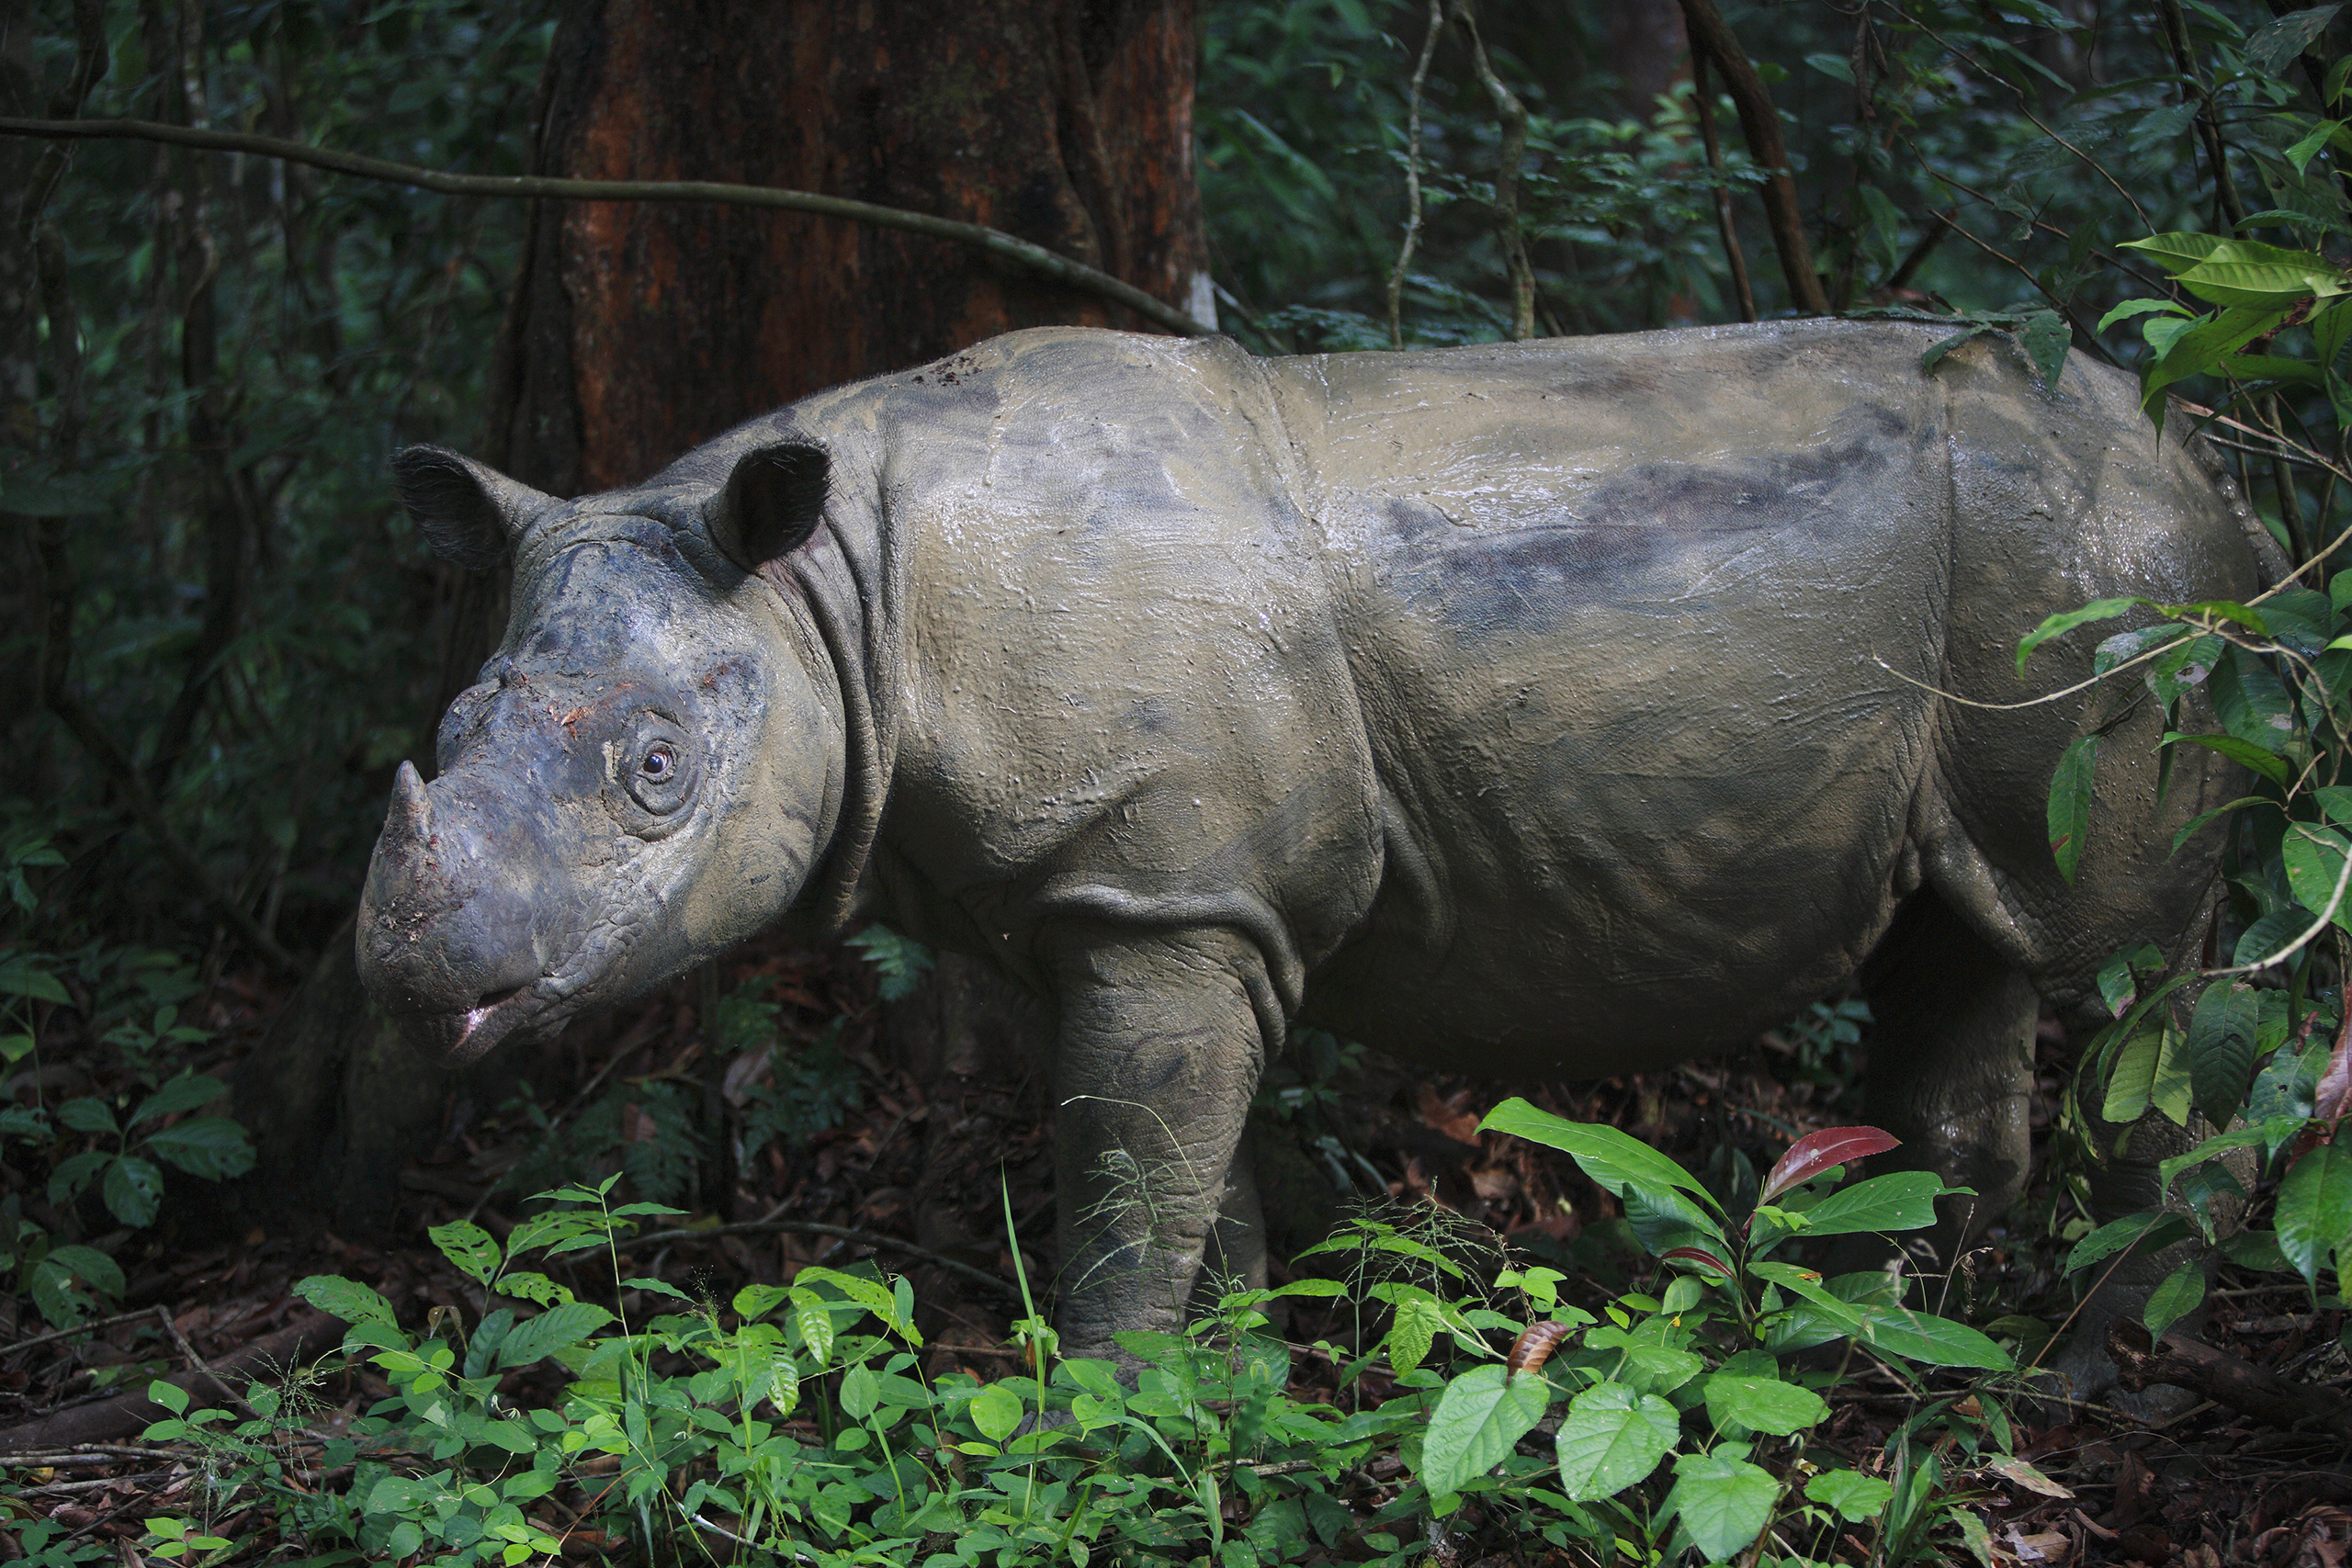 Sumatran Rhinoceros,  Way Kambas National Park, Sumatra, Indonesia. These rhinos are the smallest living rhinoceroses and the only Asian rhino with two horns.  Around 250 of these rhinos share a habitat with the, also endangered, Javan rhinoceros. Their biggest threat comes from poaching for their horns.